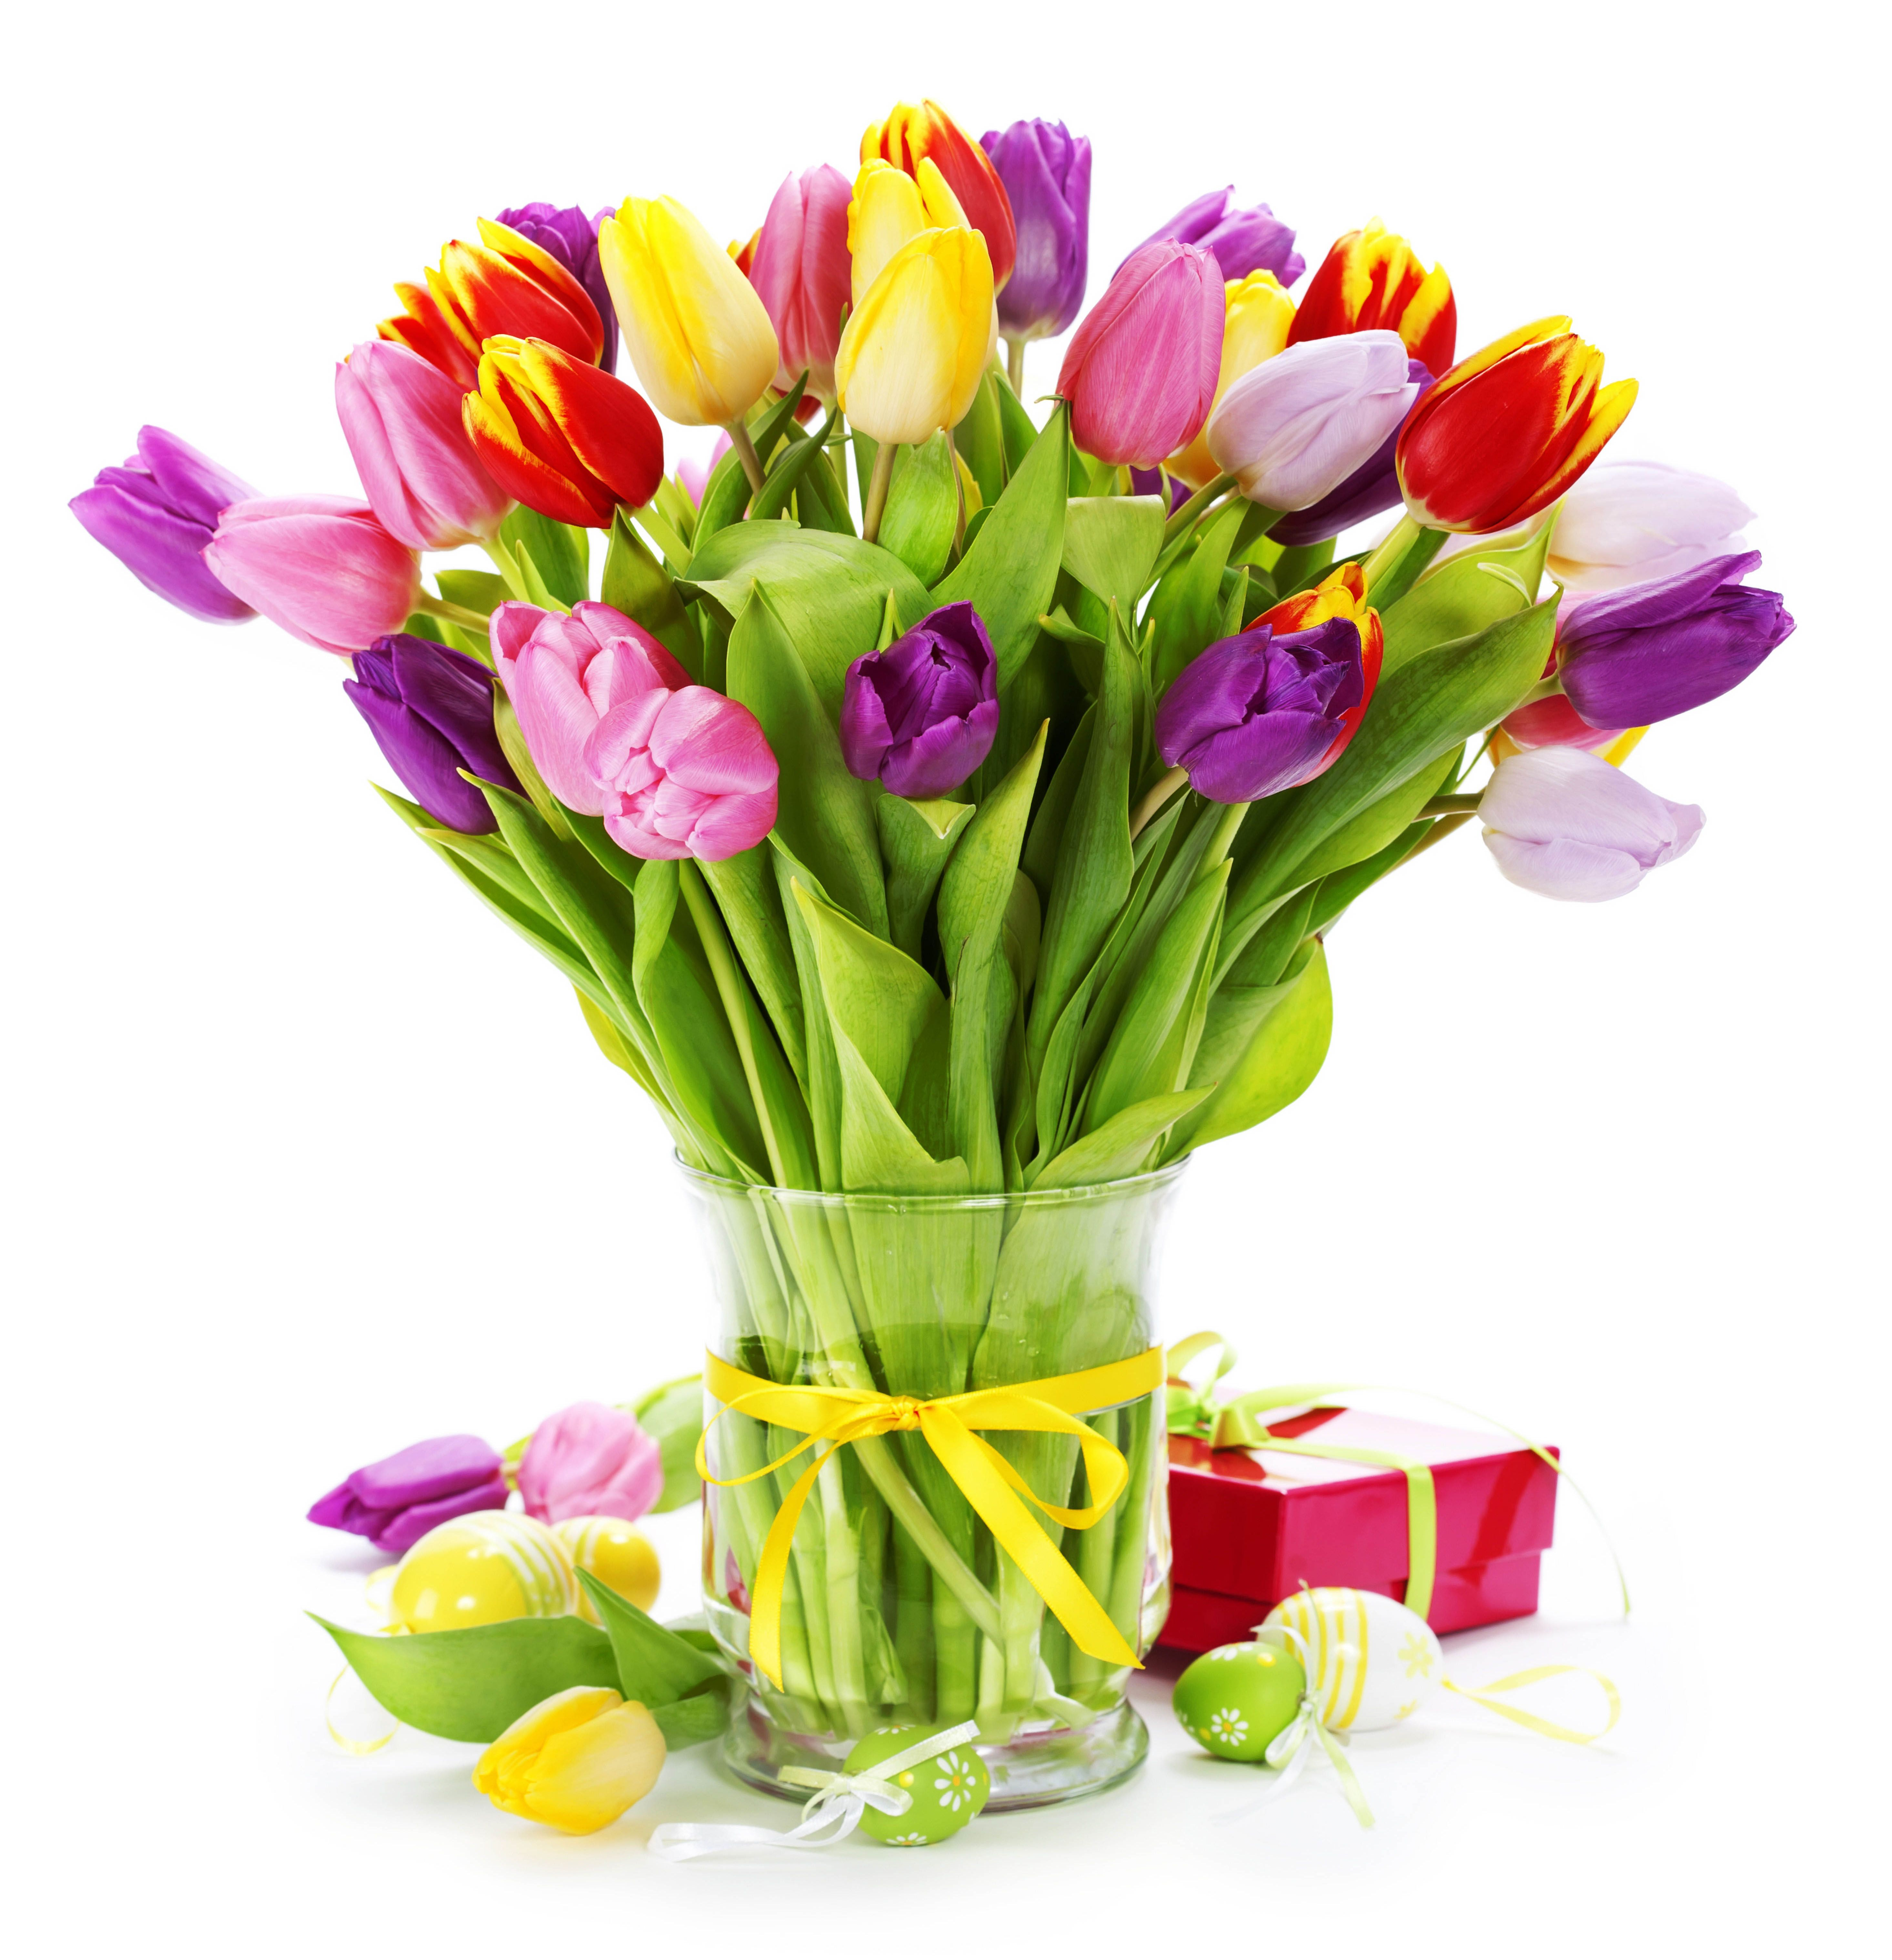 Red Vases, Tulips, Gift Bouquet, Flower, Floral Arrangements, Tulips Flowers,